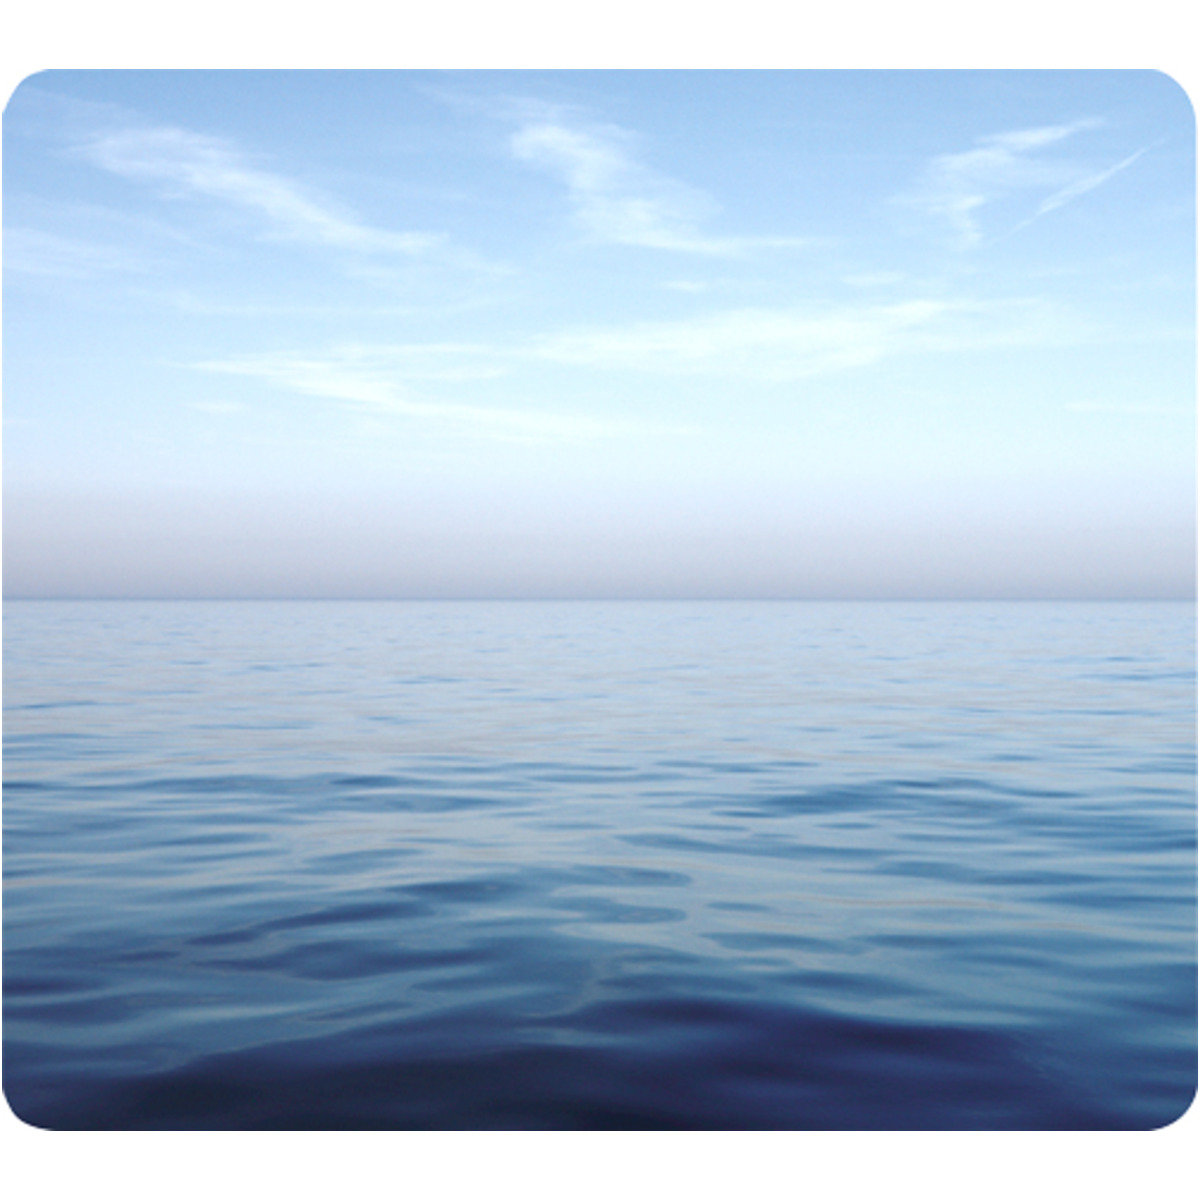 0043859542826-fellowes-tappetini-per-mouse-mousepad-eco-earthseries-oceano-blu